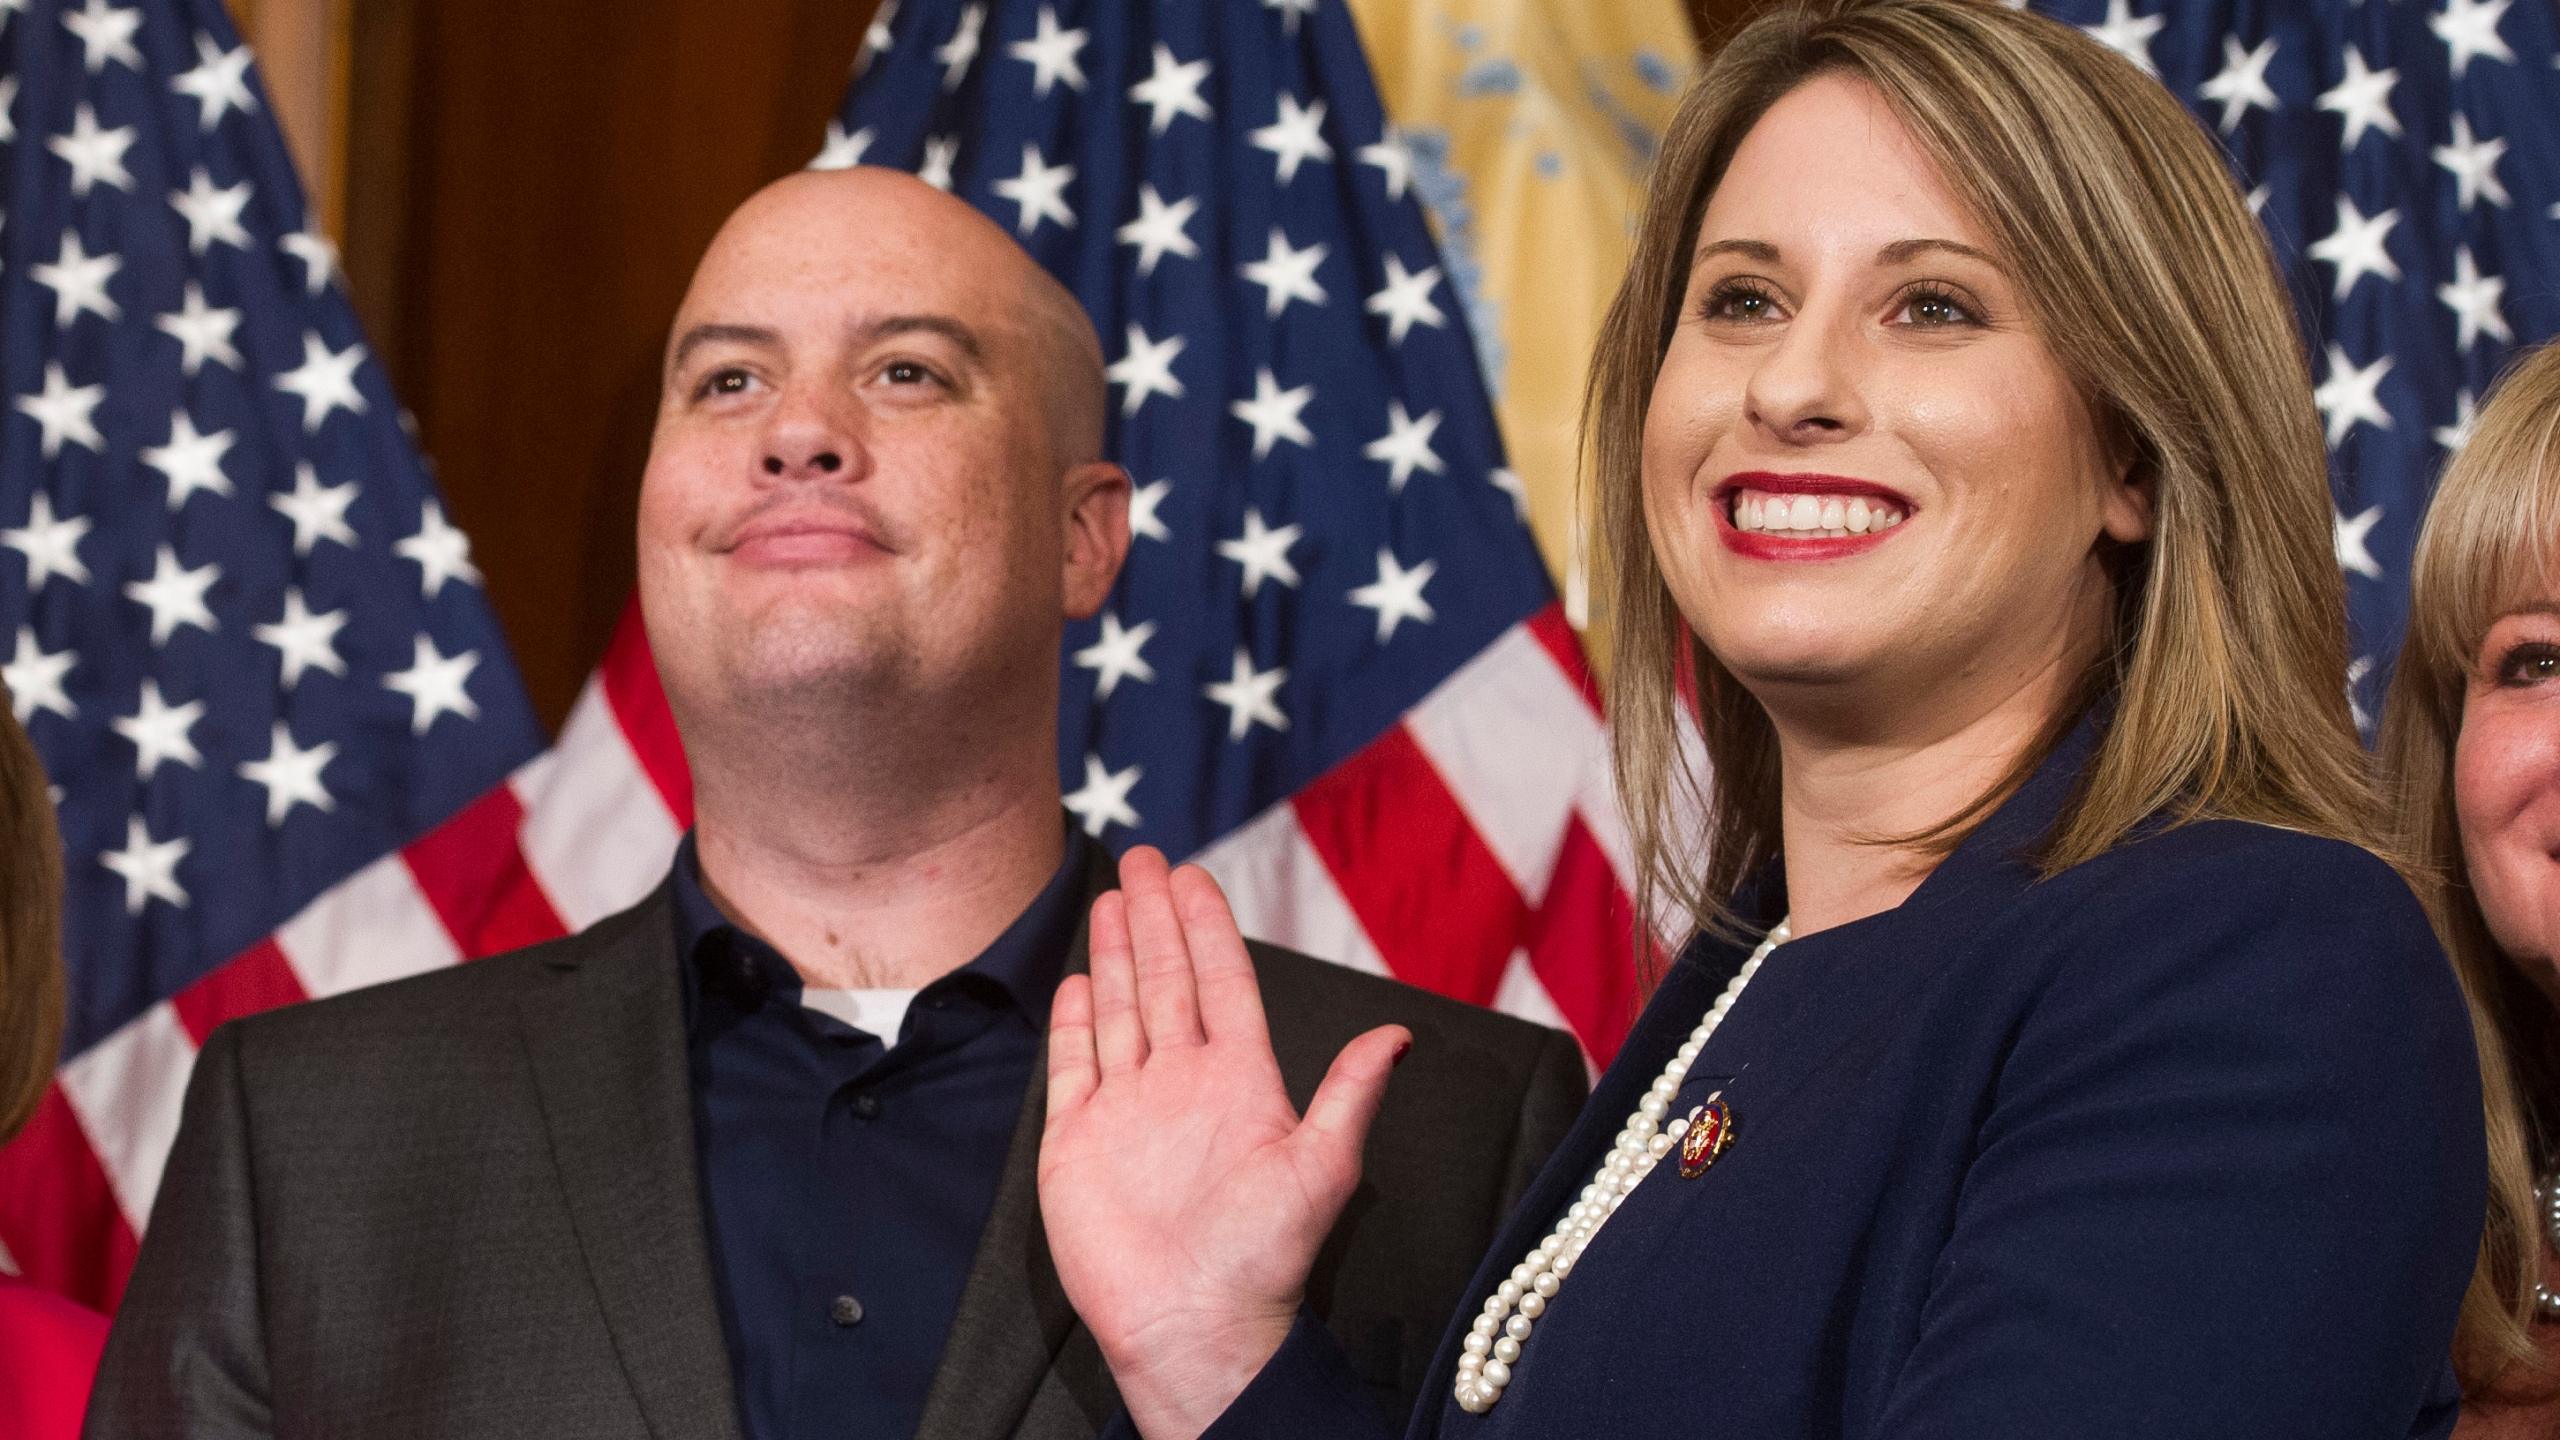 In this Jan. 3, 2019, file photo, Rep. Katie Hill, D-Calif., and Hill's then-husband, Kenneth Heslep, pose during a ceremonial swearing in on Capitol Hill in Washington during the opening session of the 116th Congress. (AP Photo/Cliff Owen, File)